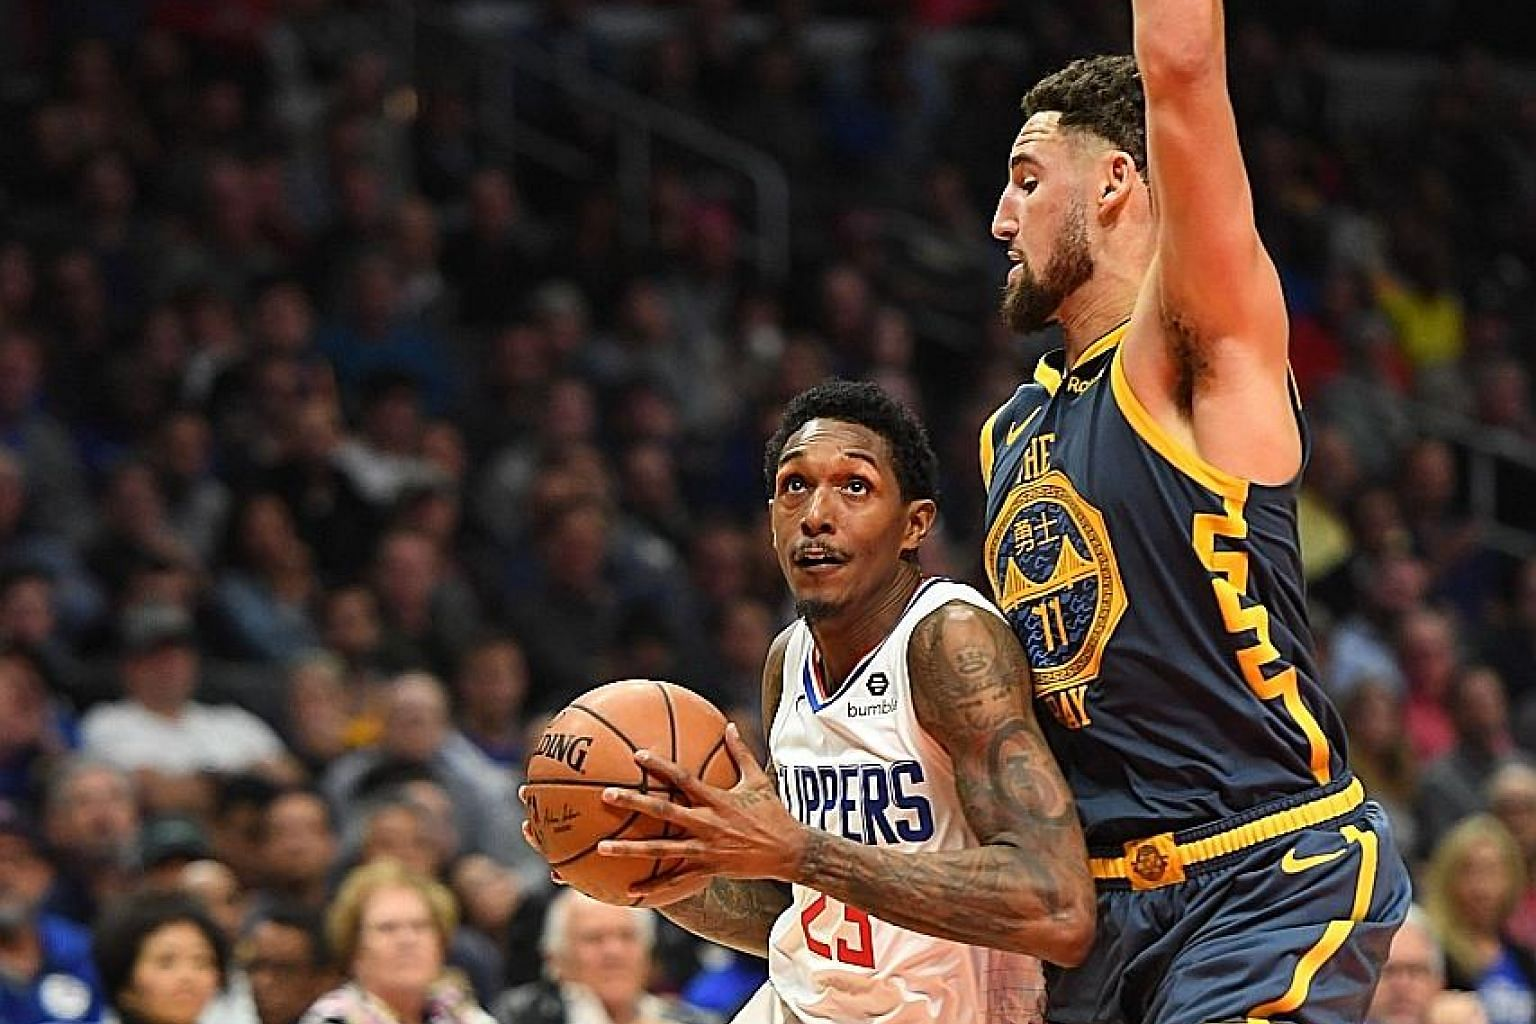 Clippers guard Lou Williams driving to the basket in overtime at Staples Centre as Warriors guard Klay Thompson defends. Williams scored 10 of his 25 points in the extra period as the visitors won 121-116.